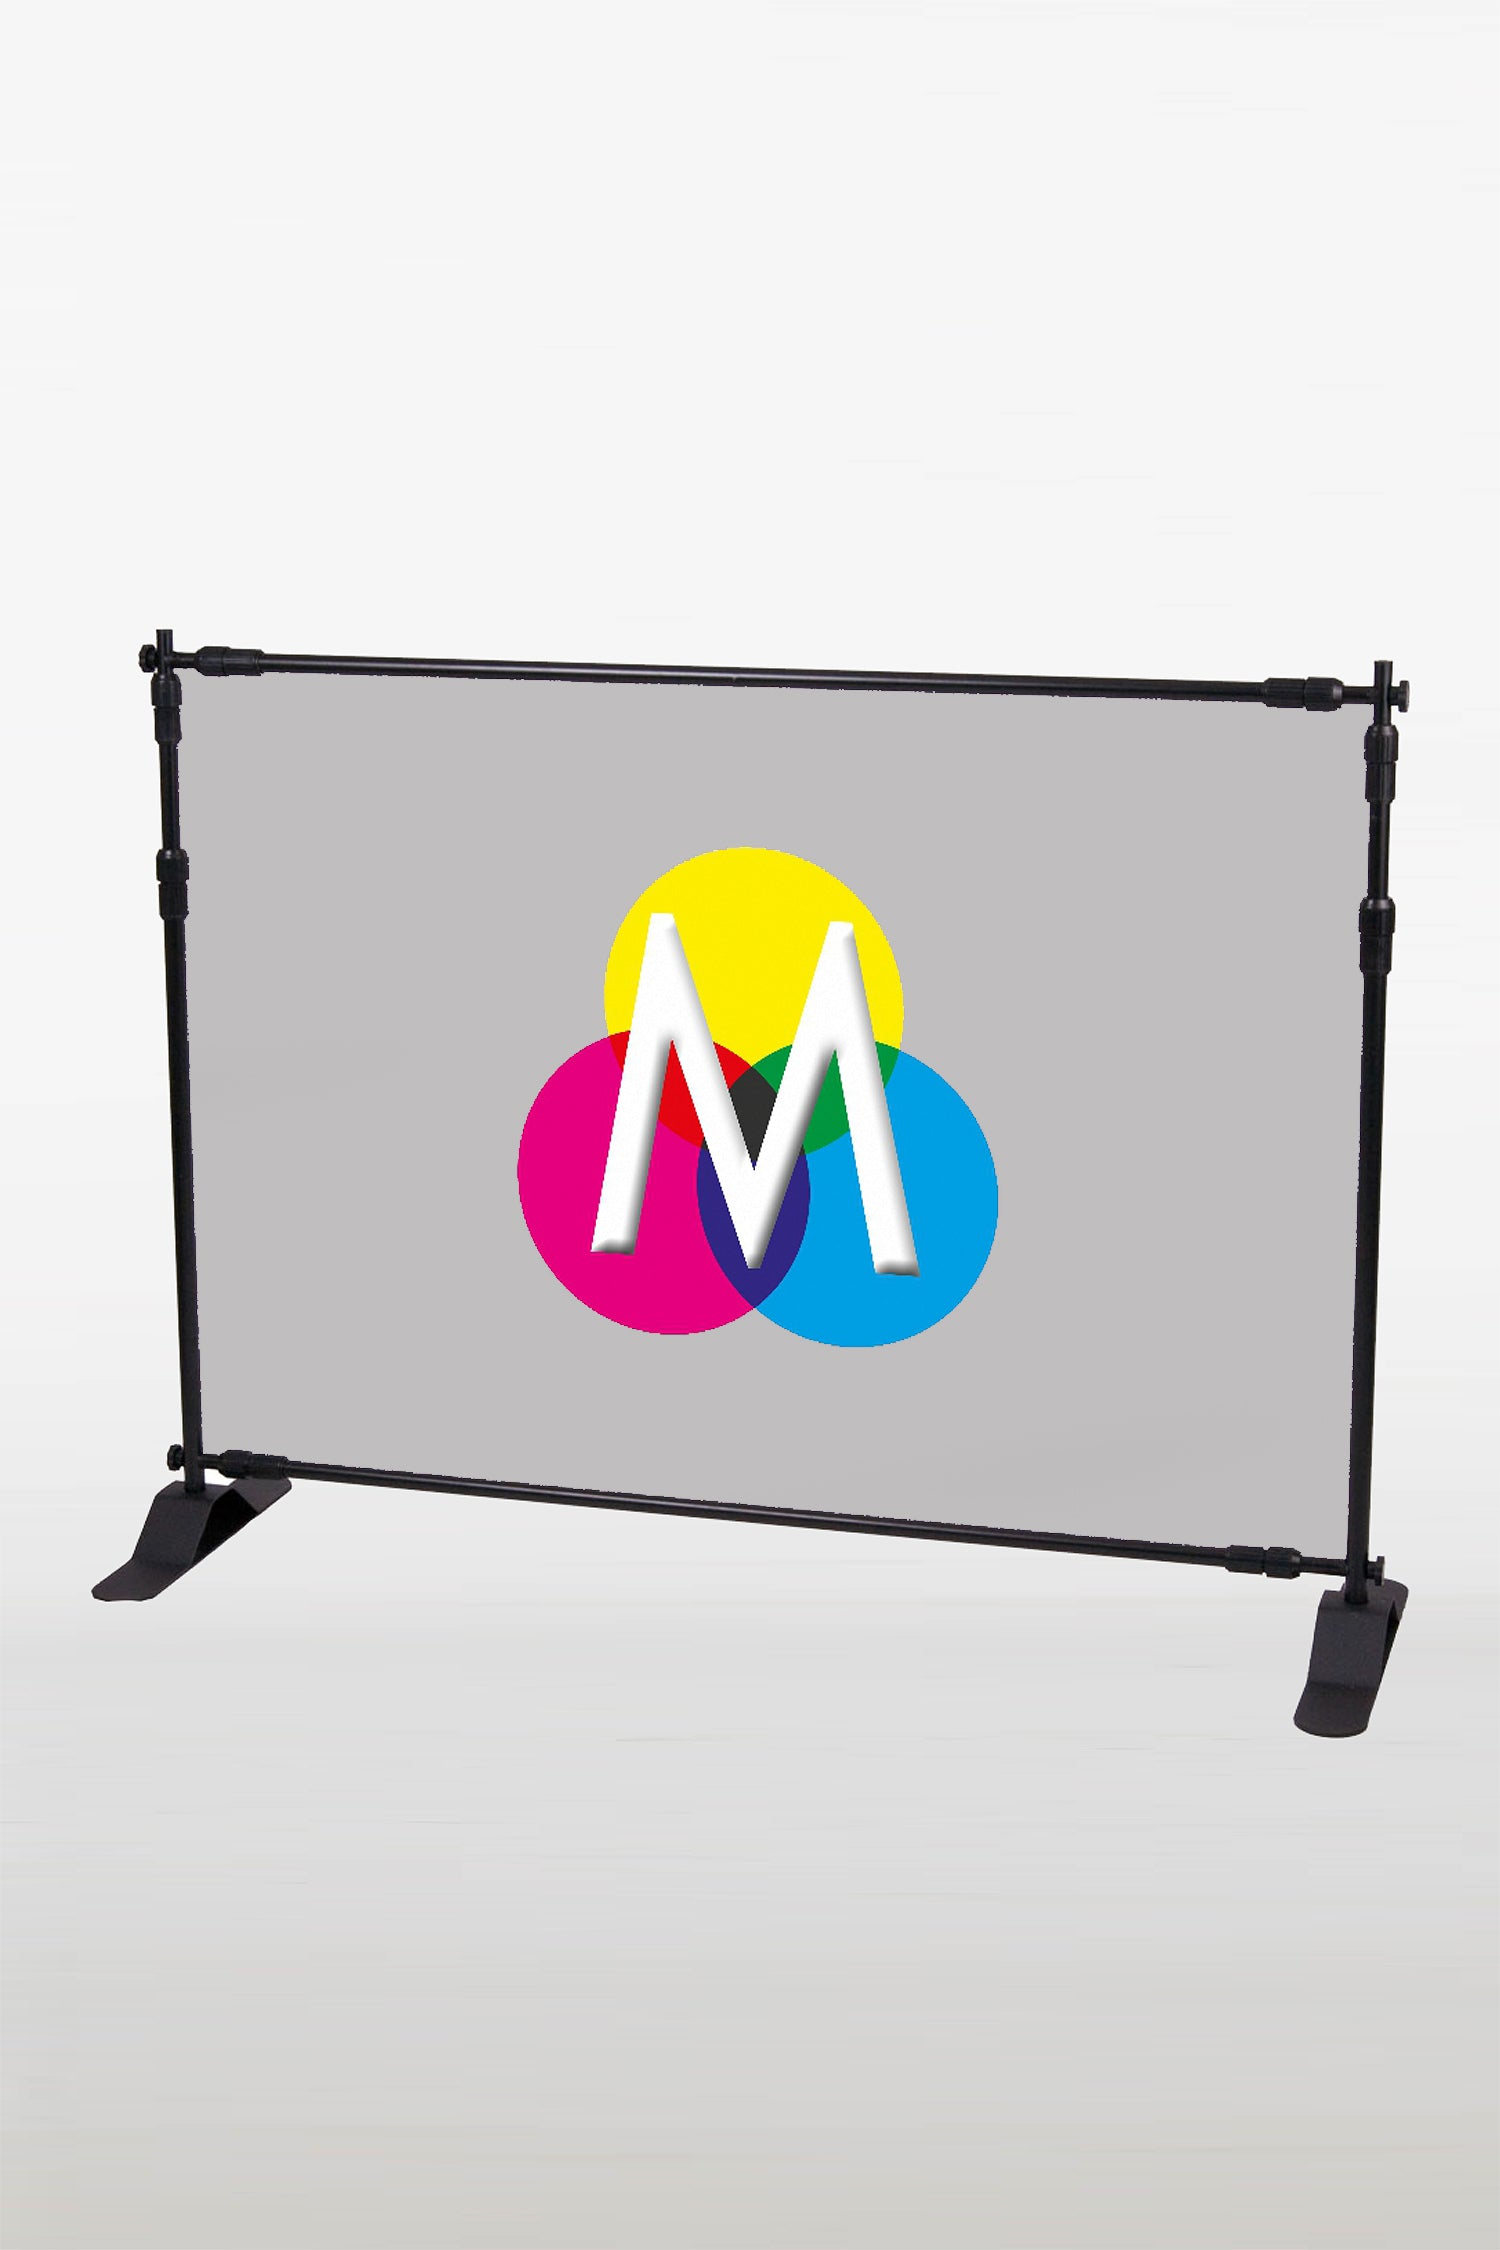 Backdrop Stand   Heavy duty, Painted, Iron stand for Flex